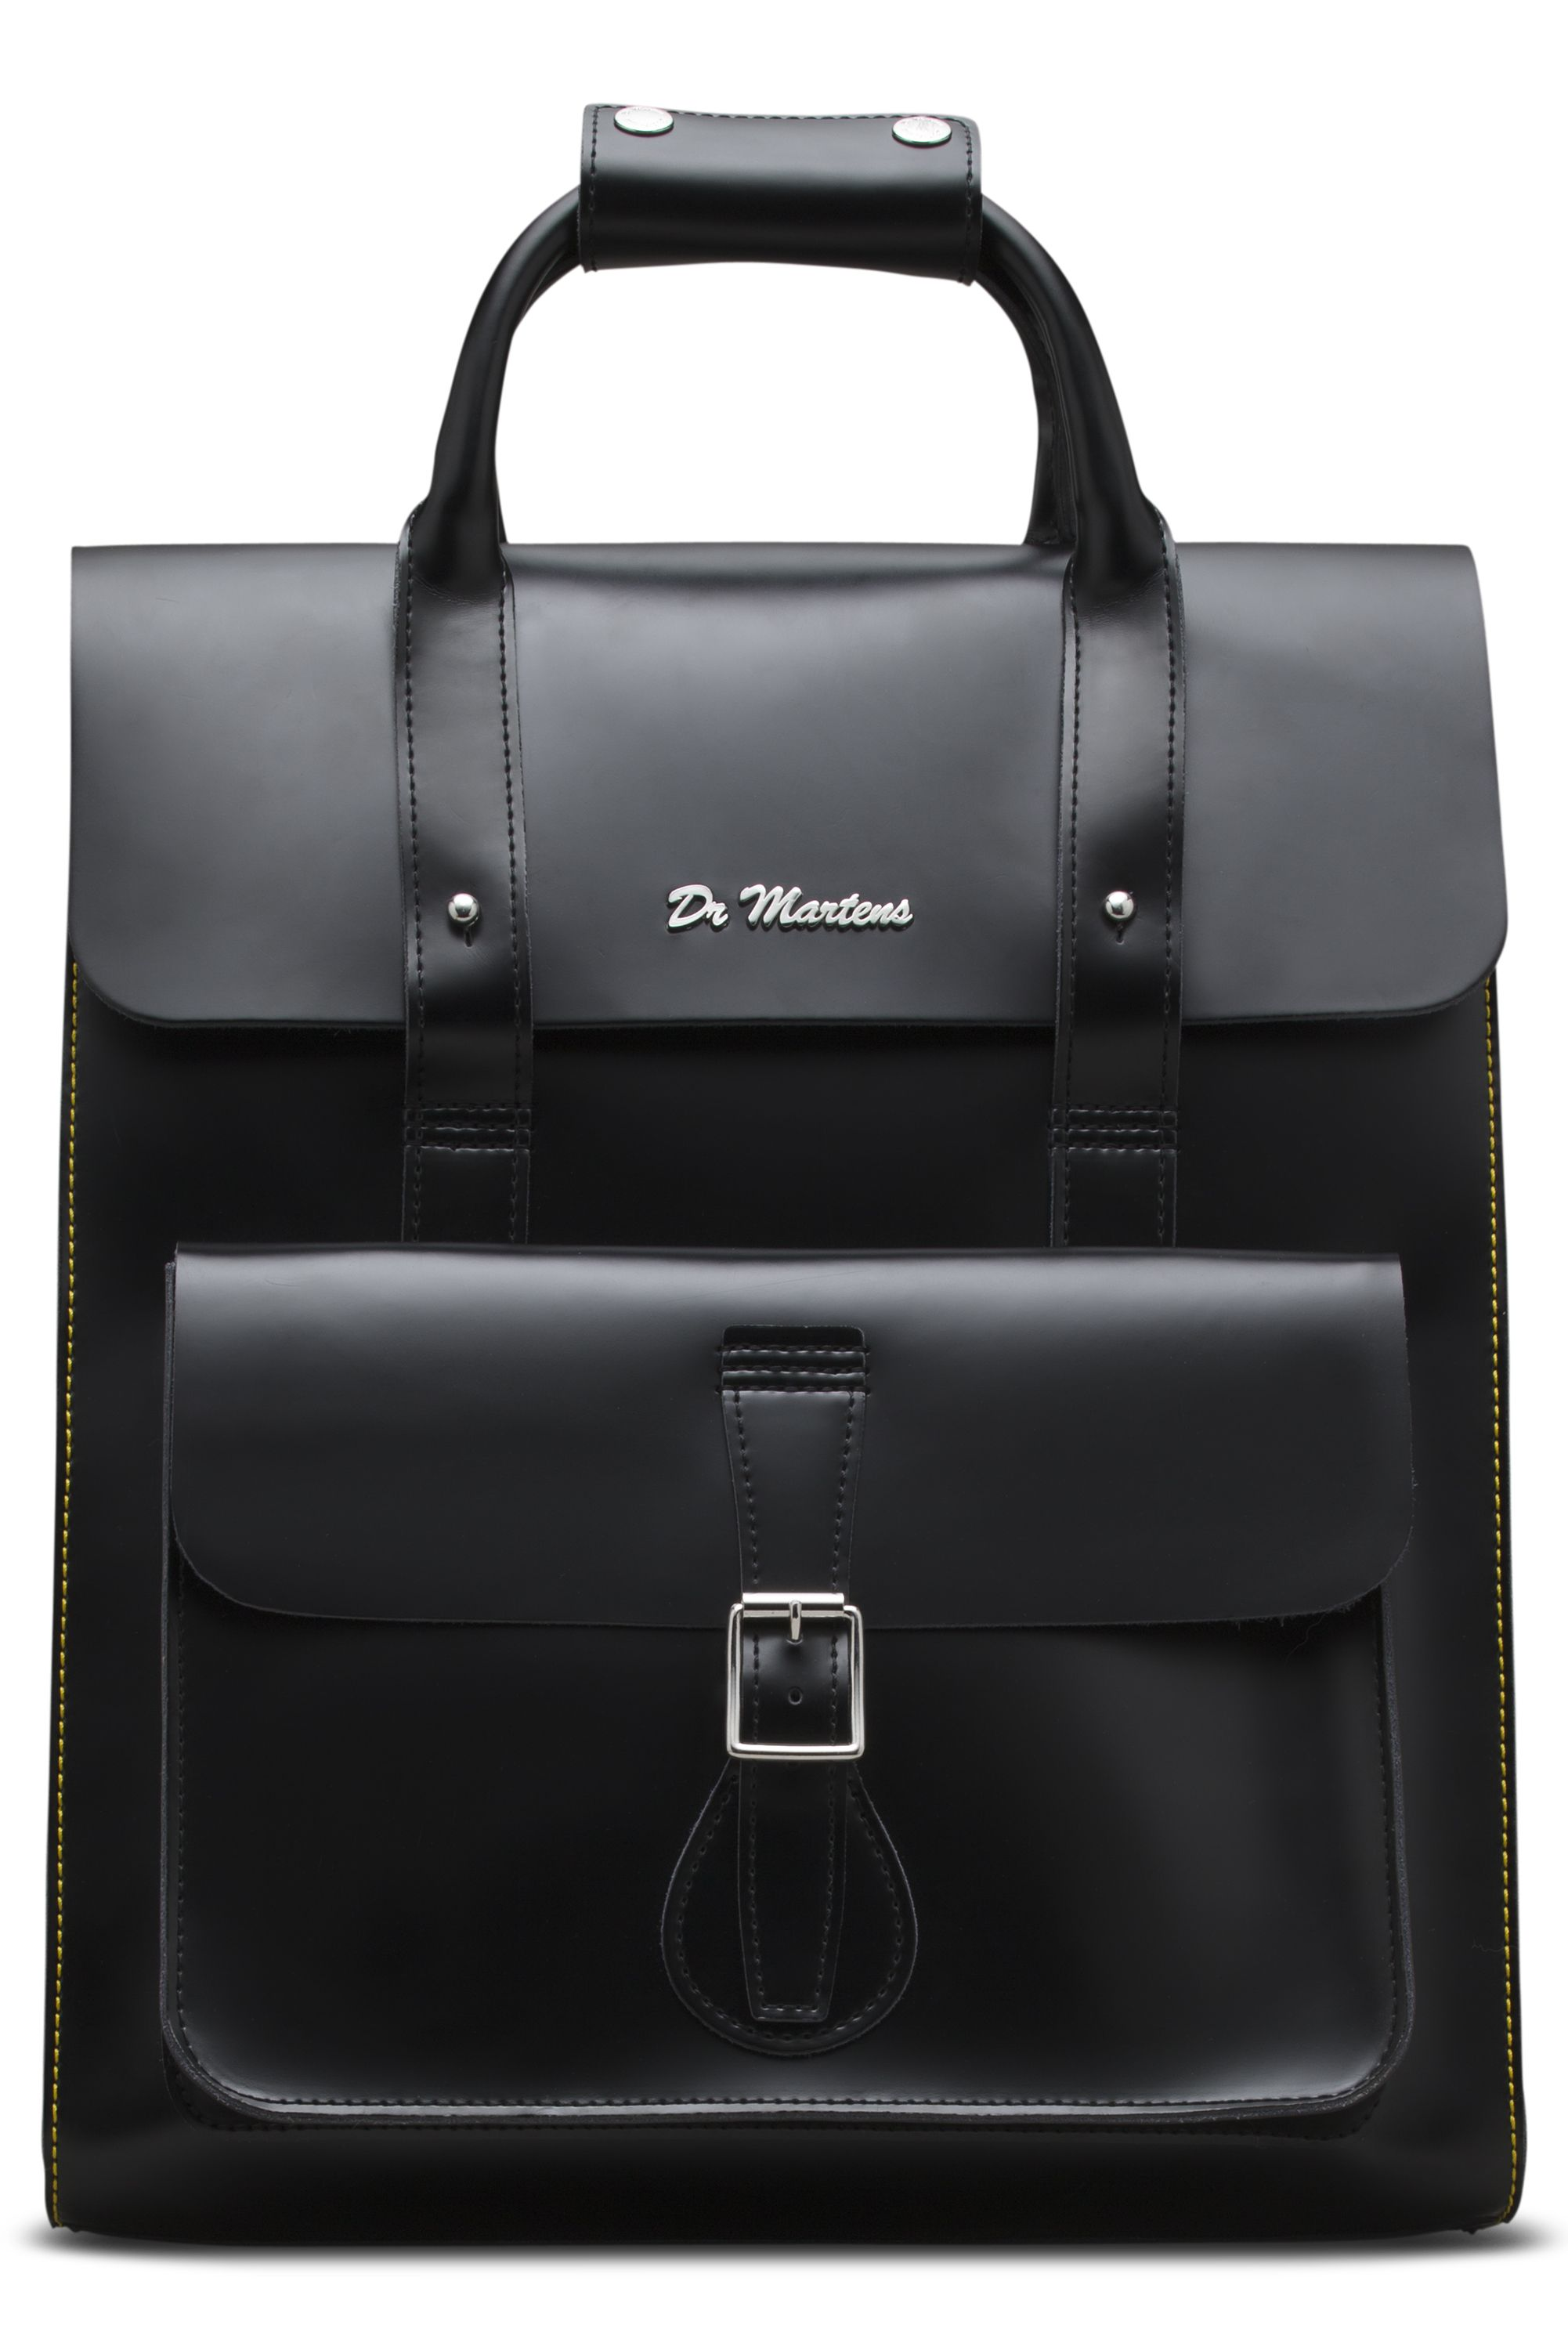 b7e1724b680 Dr martens leather backpack kiev in 2019 | 2spookycool4me - Leather ...